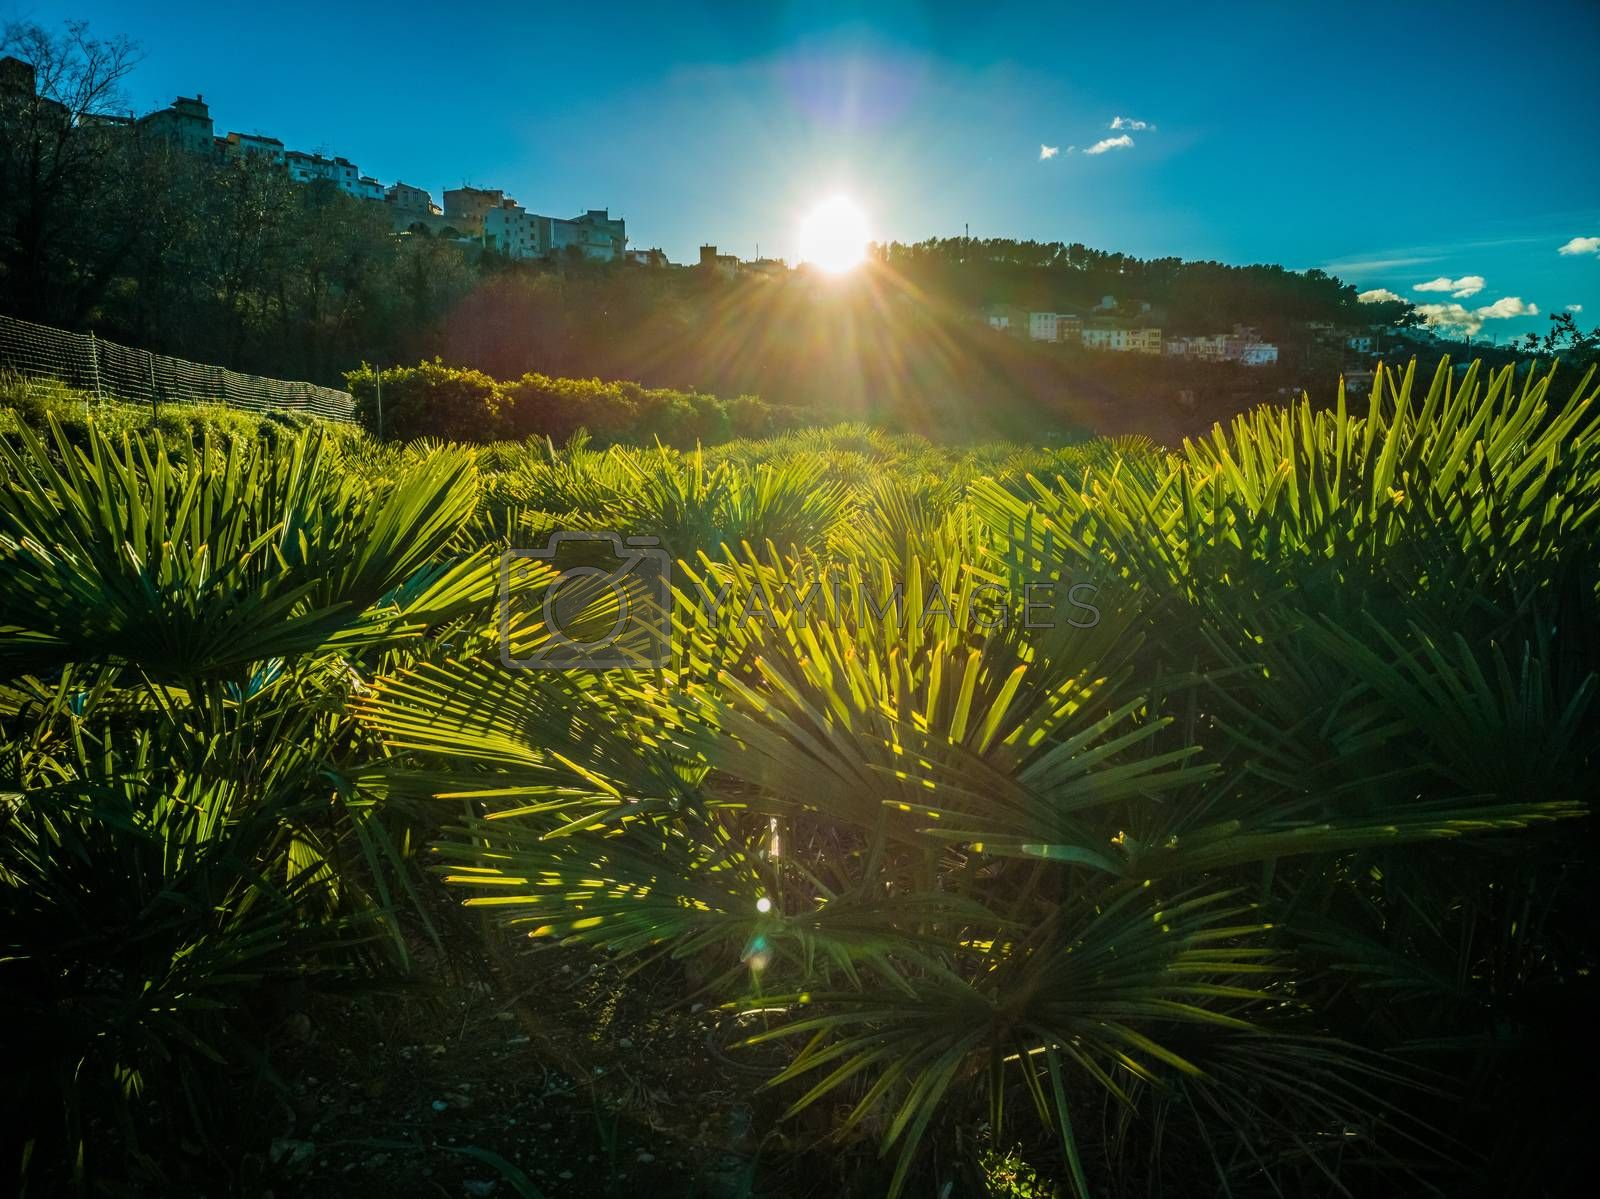 Sunset over a palm cultivation field in the village of Segorbe